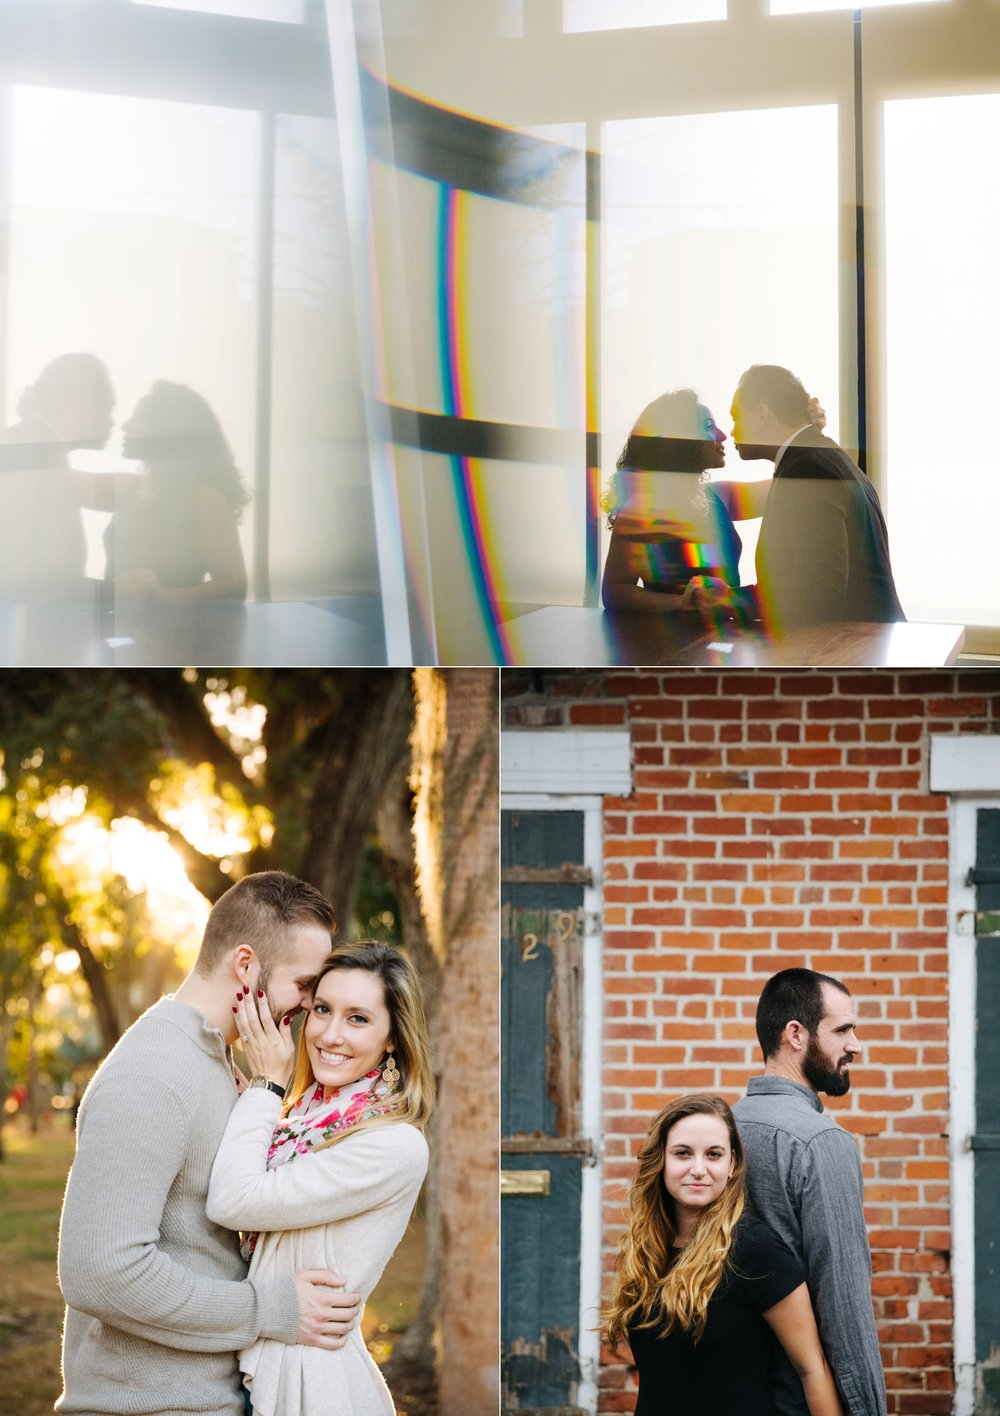 Jake & Katie Photography Best of Couples 2016-030.jpg